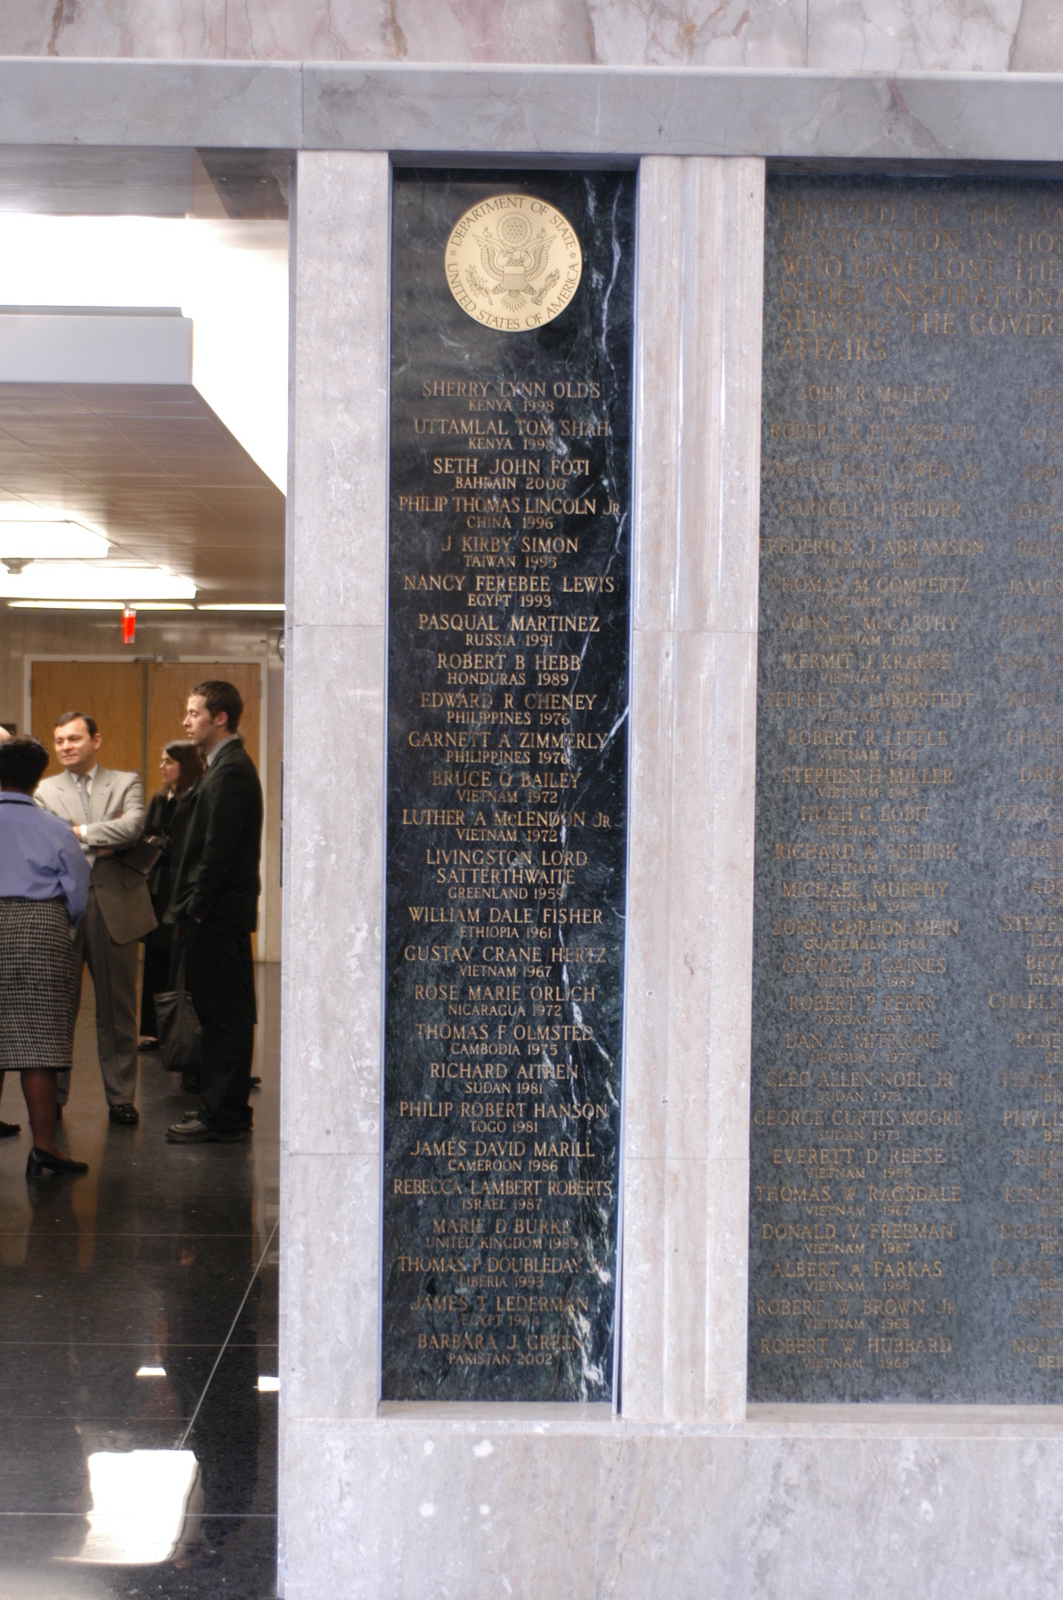 [Assignment: 59-CF-DS-13074-04] Views of American Foreign Service Association Memorial Plaque in C Street Lobby, Harry S. Truman Building.  [Among names is that of J. Kirby Simon, a foreign service officer who died while serving in Taiwan in 1995--and the namesake for the J. Kirby Simon Foreign Service Trust, dedicated to international assistance projects.] [Photographer: Mark Stewart--State] [59-CF-DS-13074-04_DSC_0265.JPG]